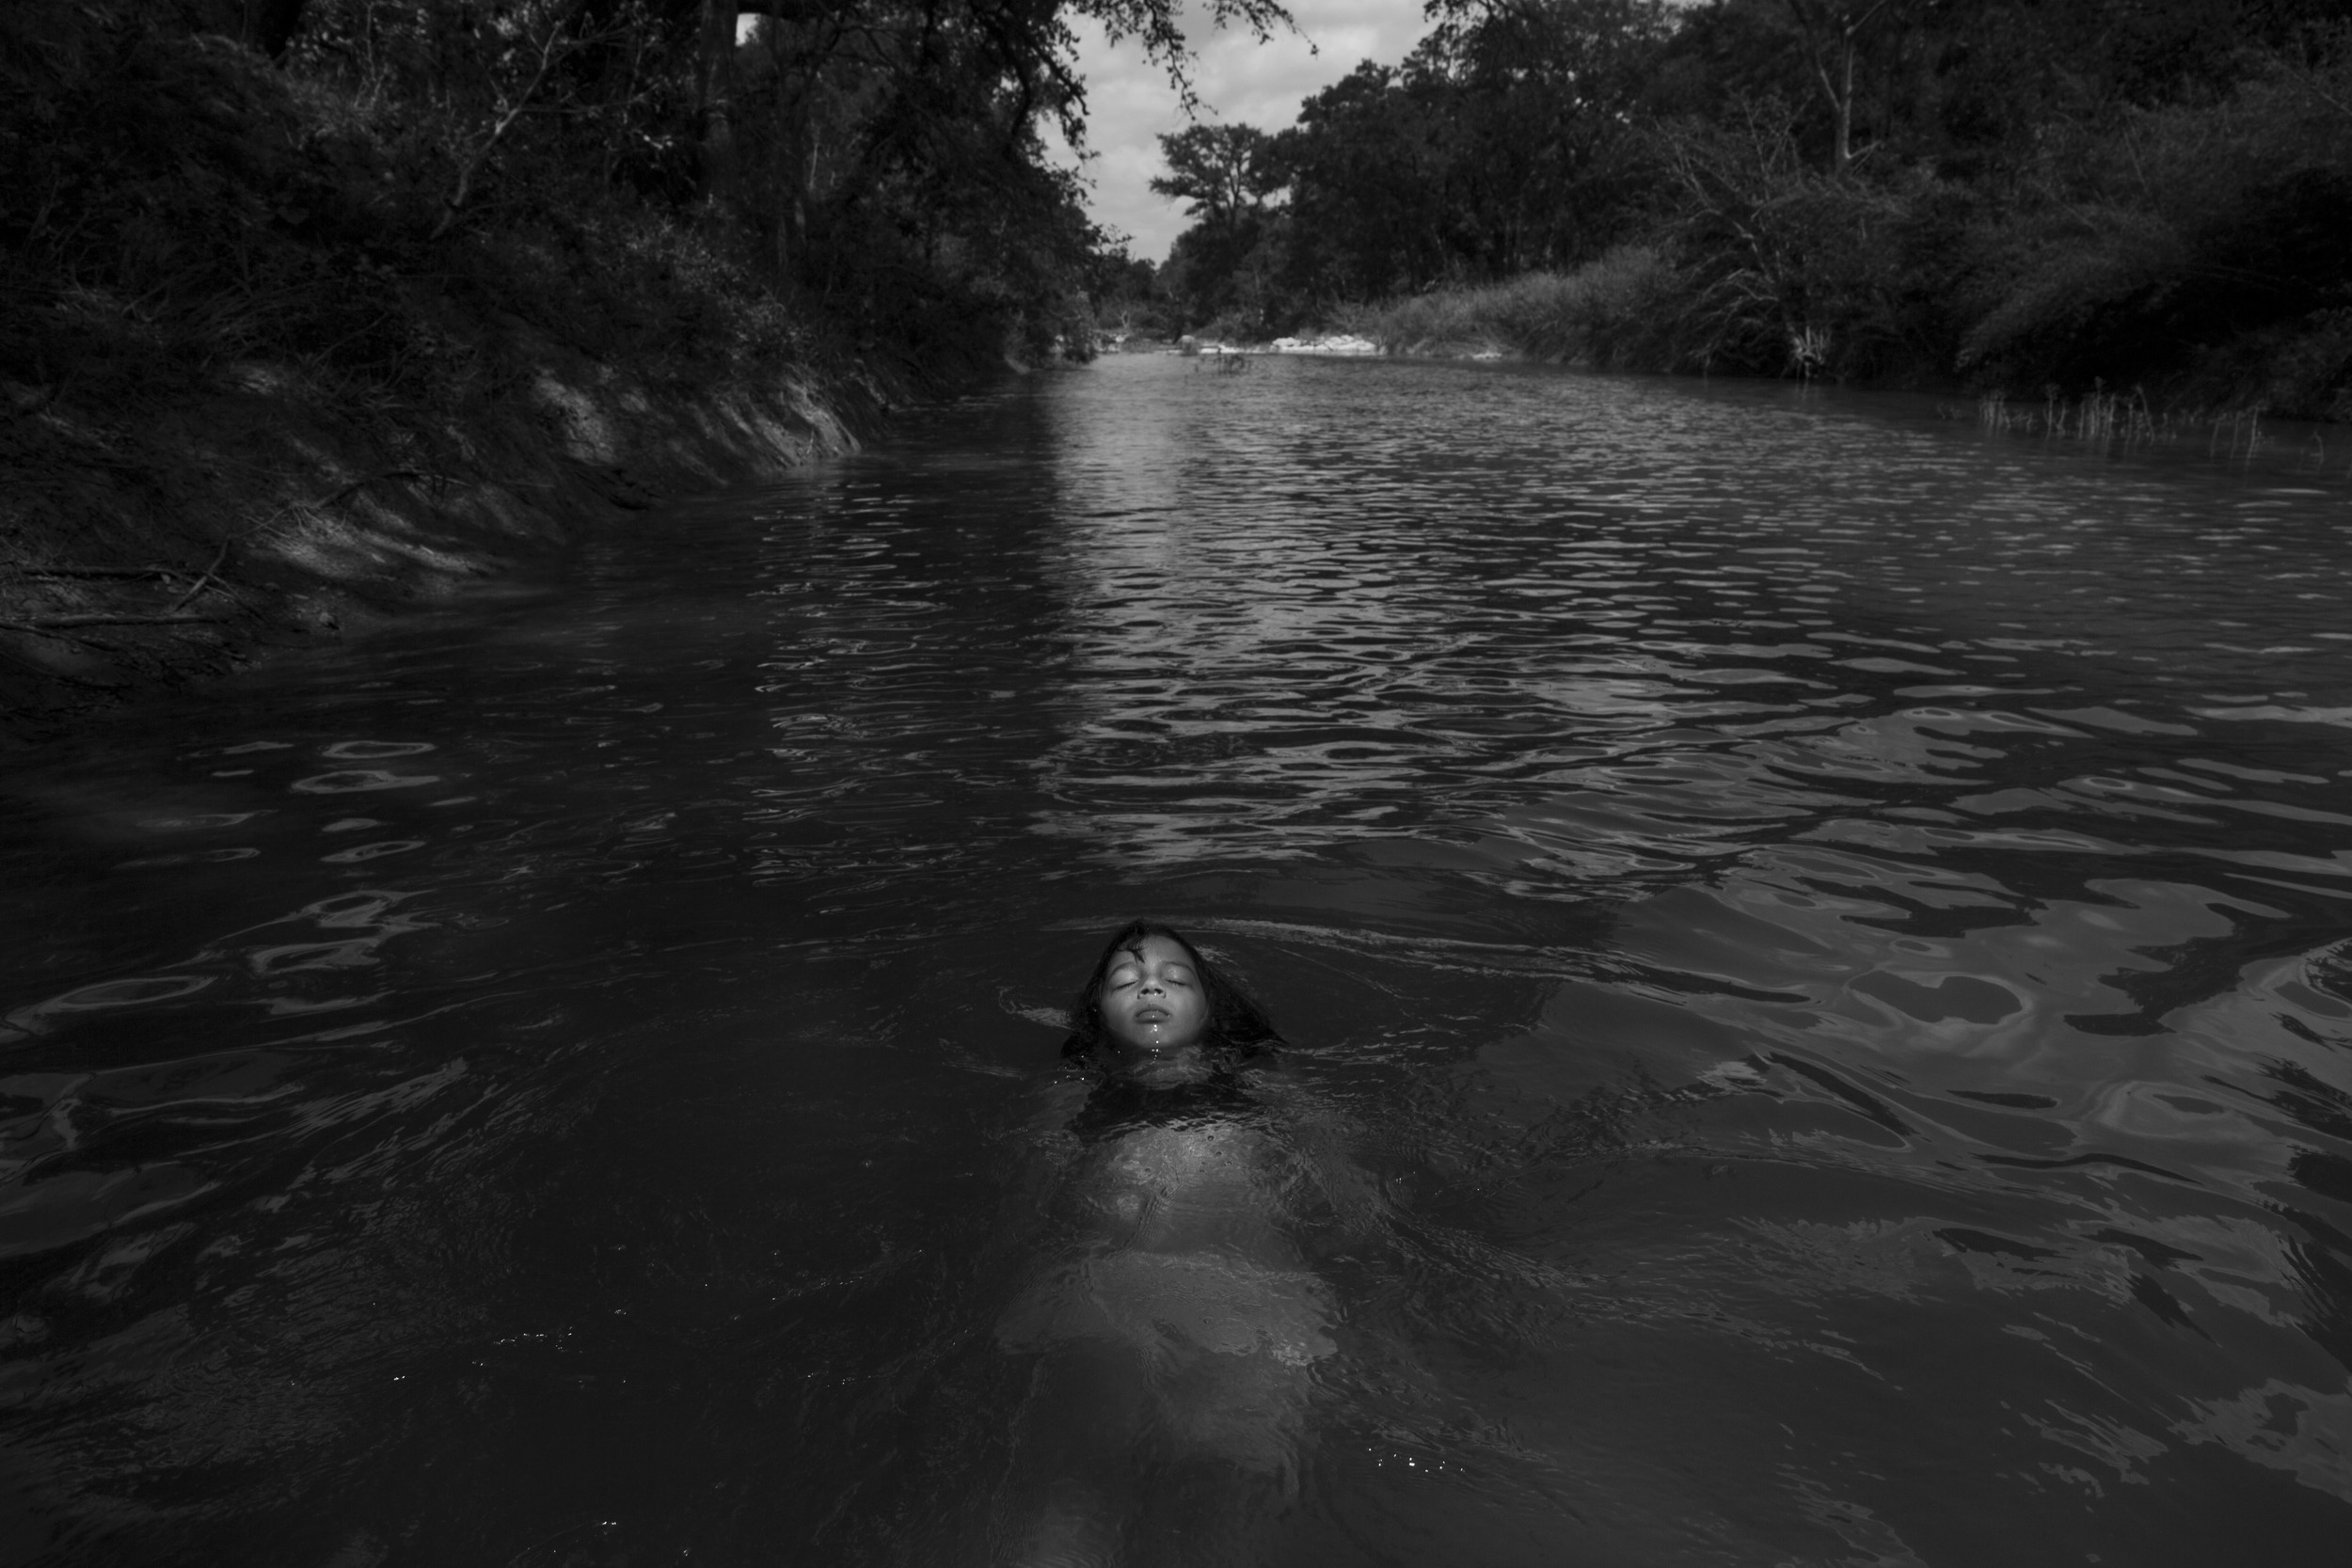 "Serenity Bamberger floats in the Little Blanco River along her family's property on August 18, 2015 in Blanco, Texas. Three months prior, over Memorial Day, the same river flooded their home and business destroying the majority of the family's belongings and source of income. The Memorial Day weekend flooding, which affected Texas and Oklahoma, killed 24 people according to The Associated Press. Three of those deaths occurred along the Blanco River of which the Little Blanco River is a direct tributary. Despite the toll the river has taken, Bertha Rivera, Serenity's grandmother, said, ""The river bed was dry for years, so now that the water is here I tell the girls to take advantage of it all that they can."""